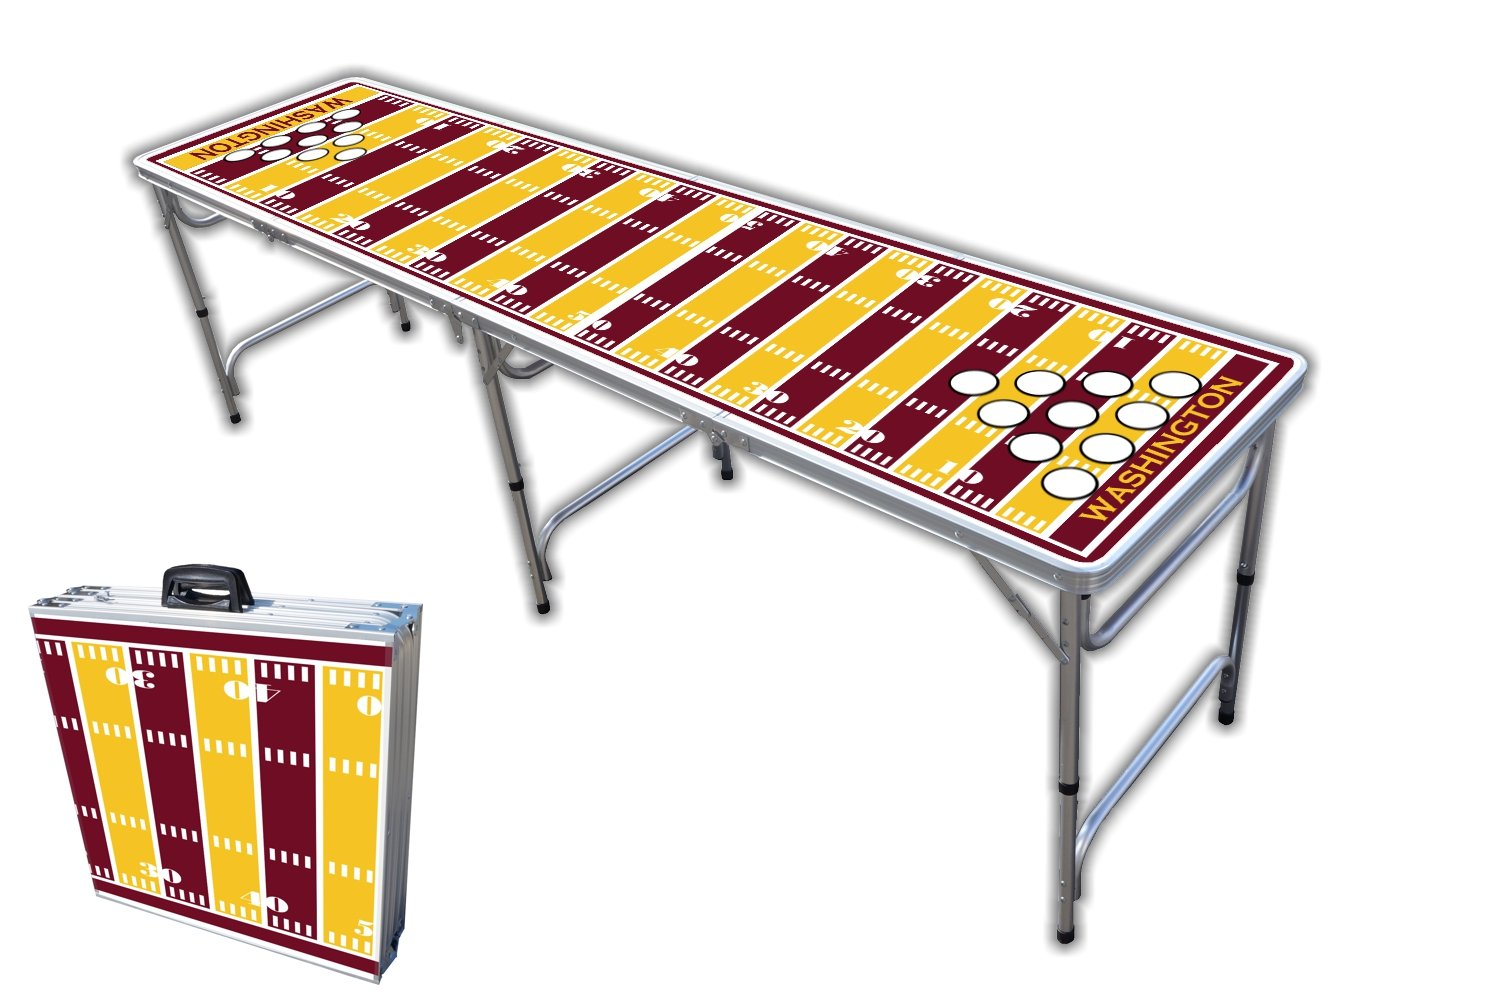 8-Foot Professional Beer Pong Table w/Holes - Washington Football Field Graphic by PartyPongTables.com